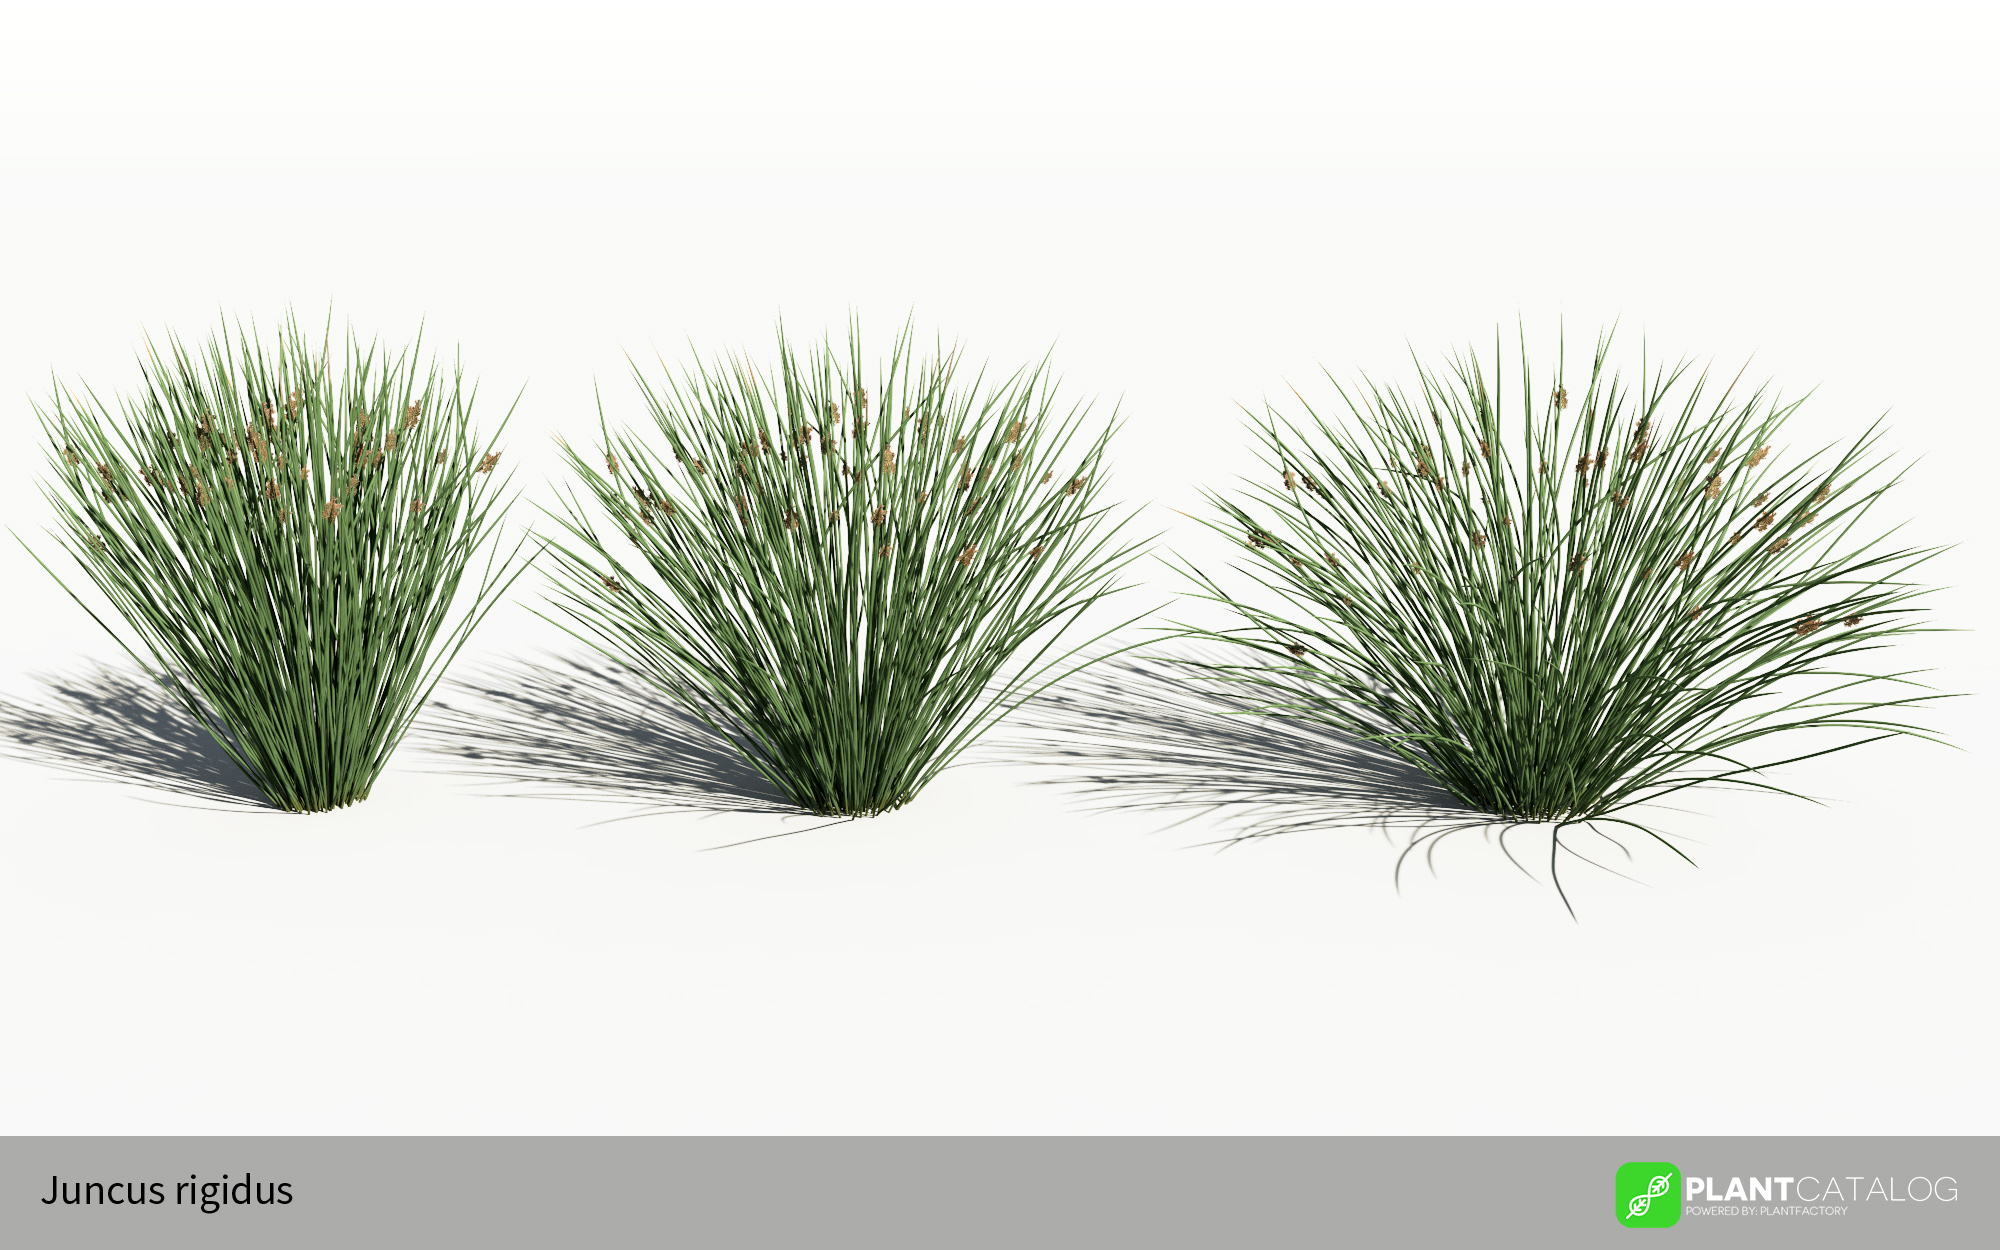 04 3D plant model see rush Juncus rigidus swamp perennials PlantFactory vegetation modeler software curving